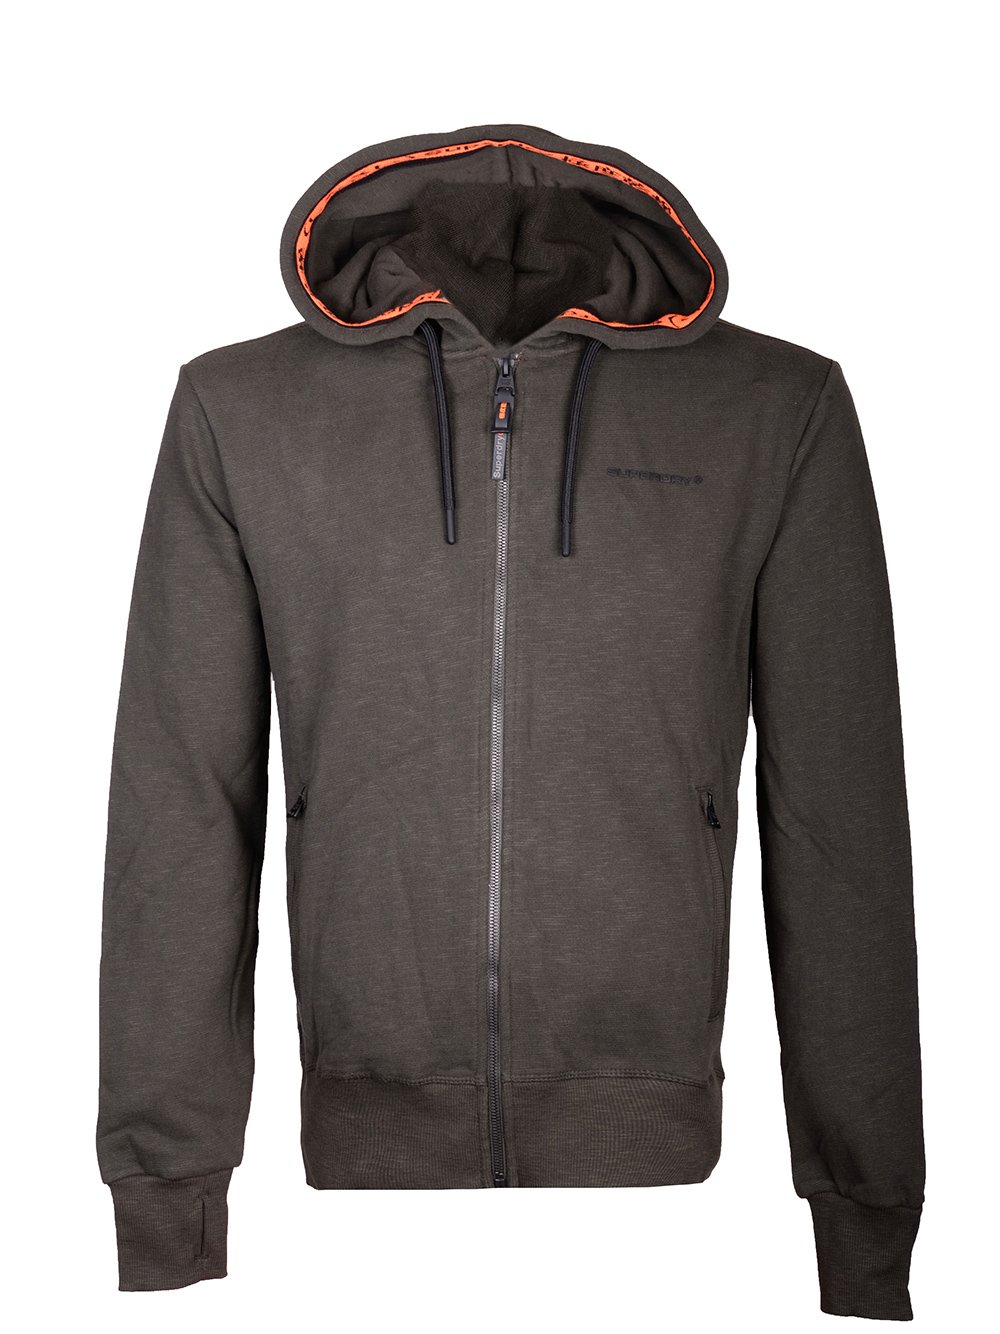 SUPERDRY Ζακέτα με κουκούλα M2000062A-Z6V ΛΑΔΙ